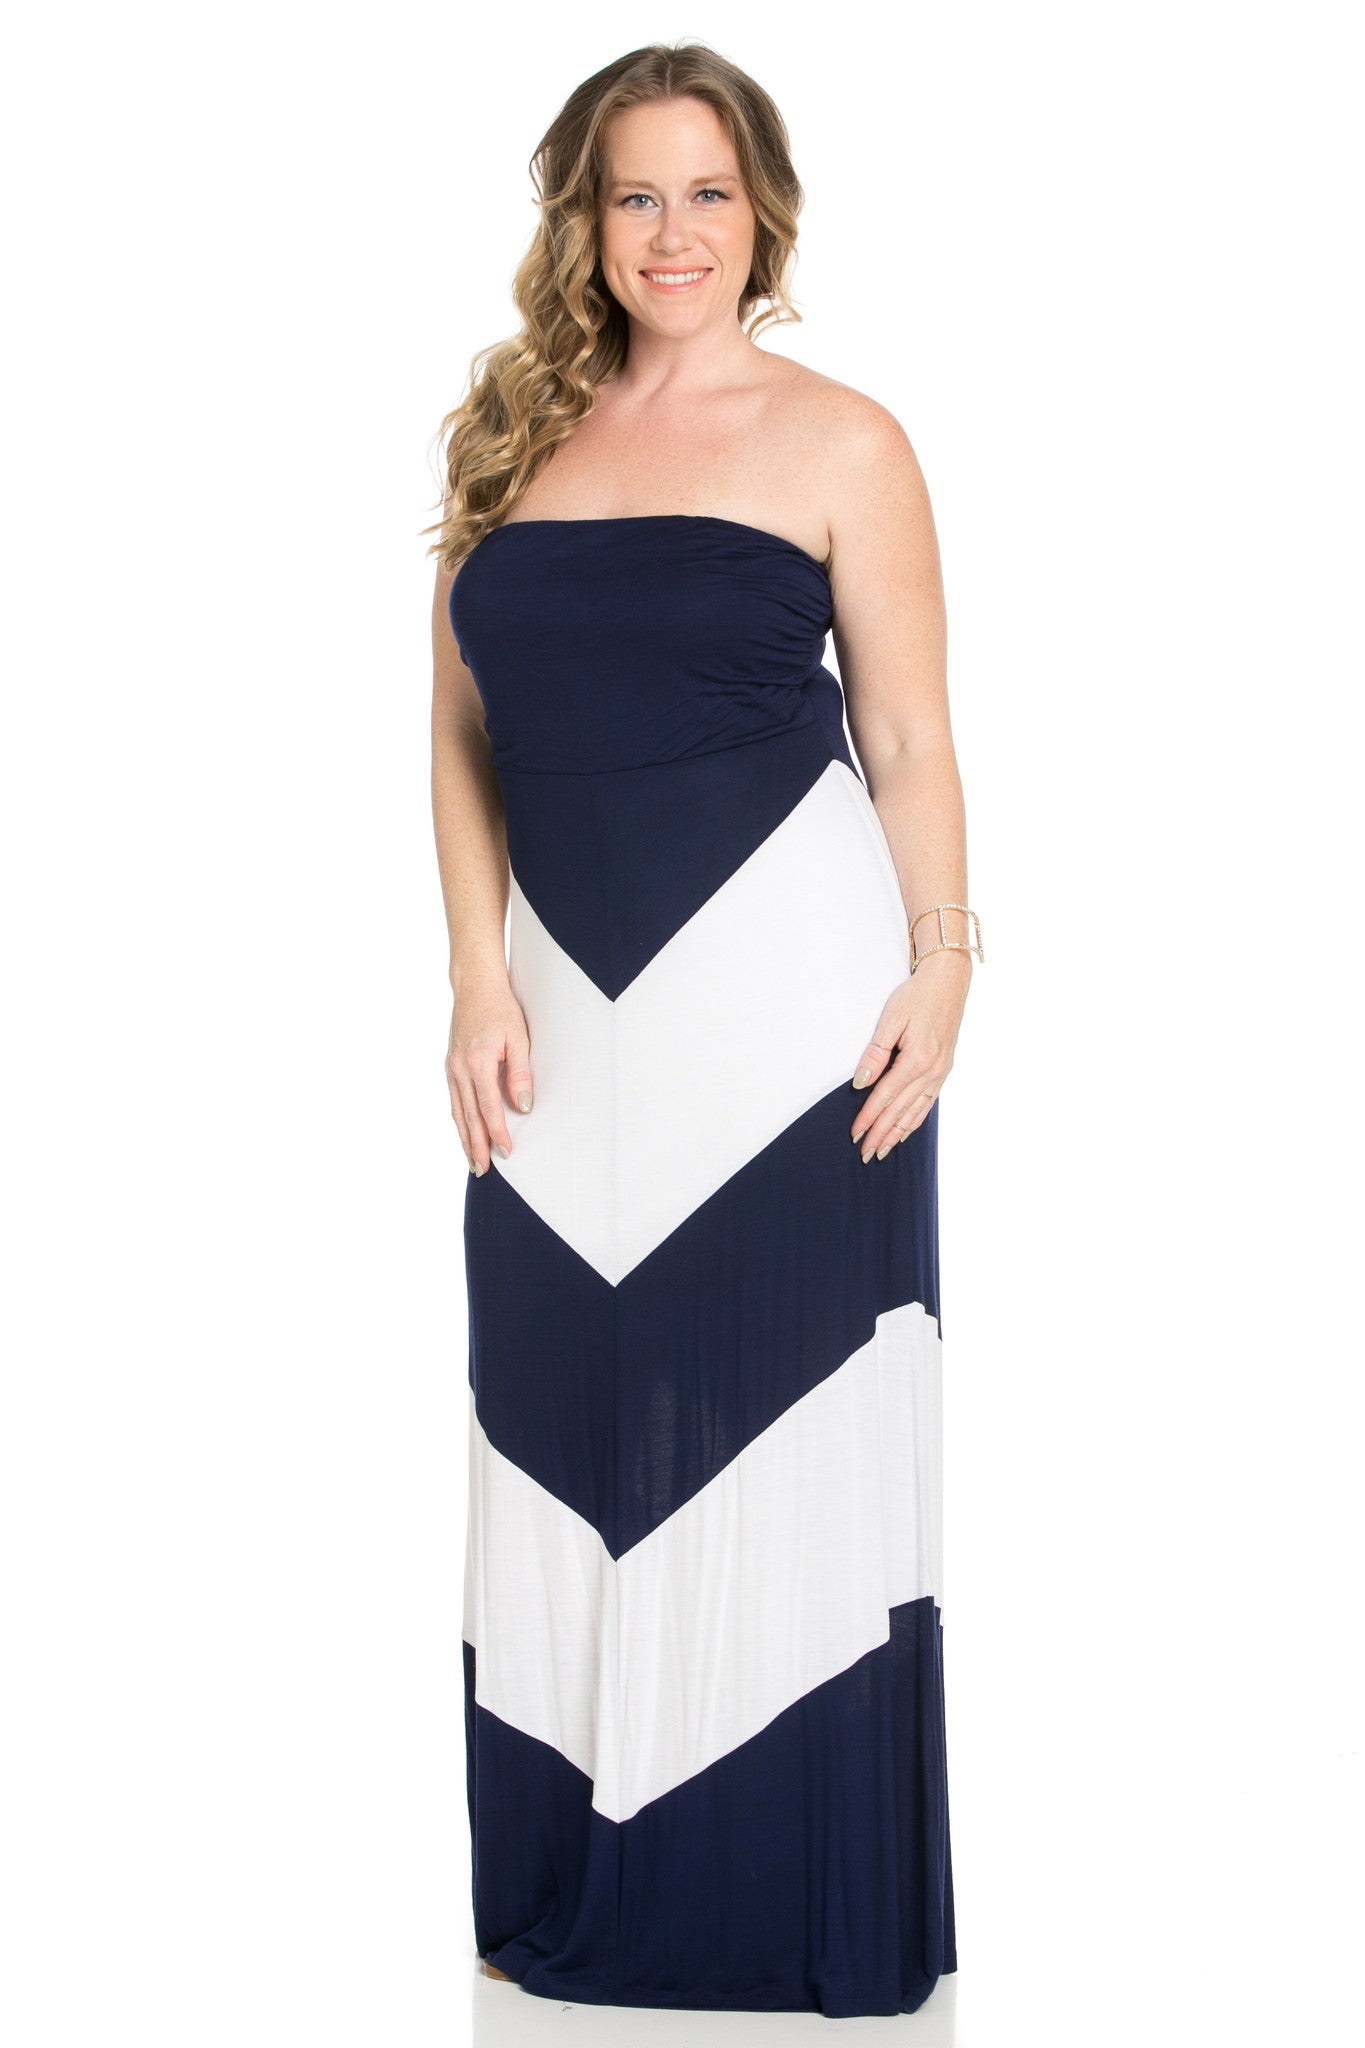 Strapless Long tube Dress Navy/White Cause You're Chevron - Dresses - My Yuccie - 6